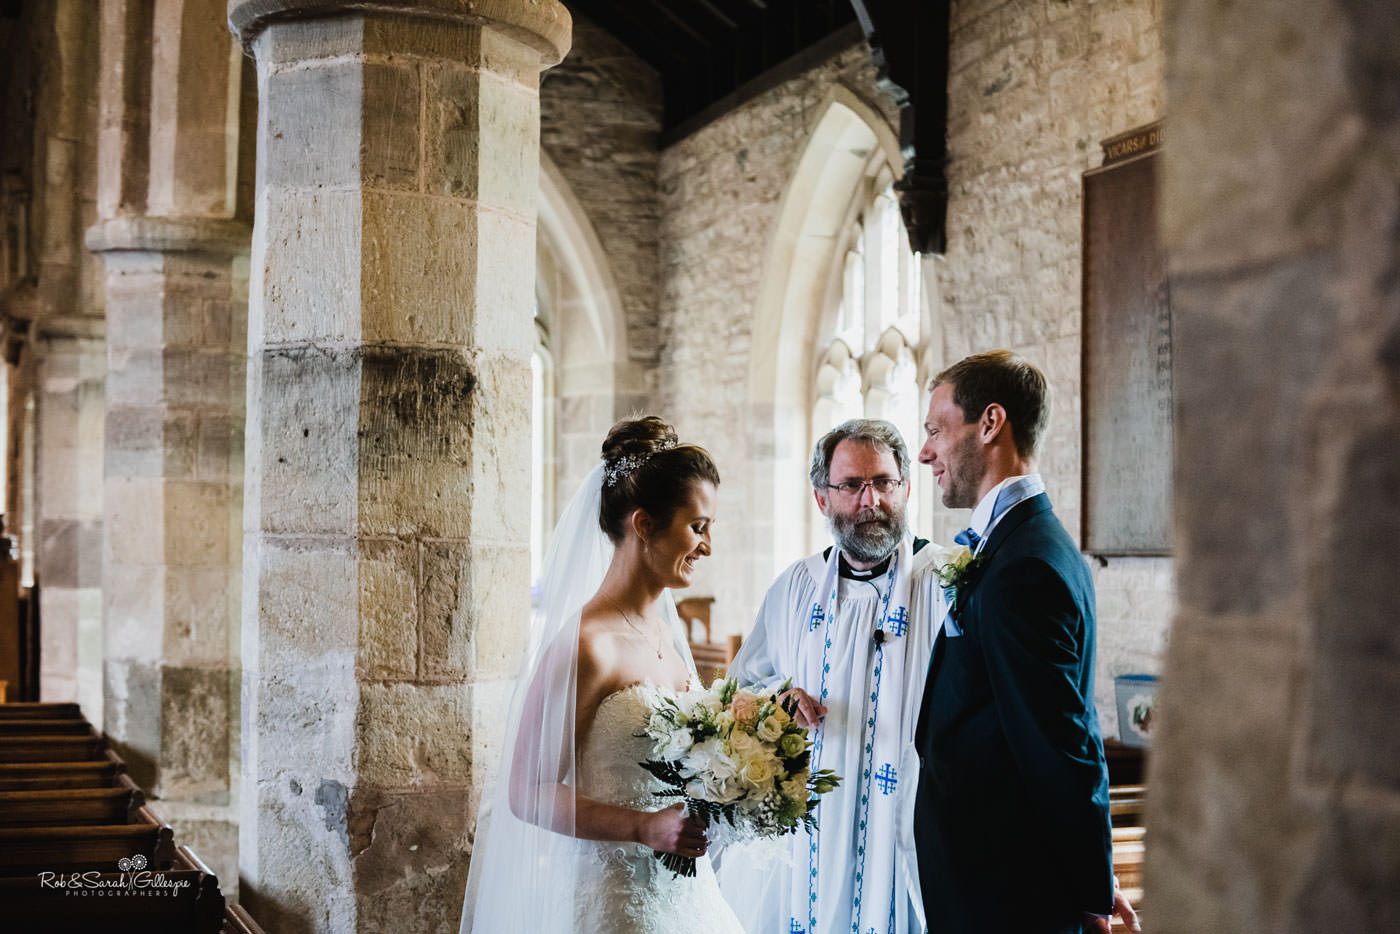 Bride and groom walk down aisle at St Peter's Church Diddlebury